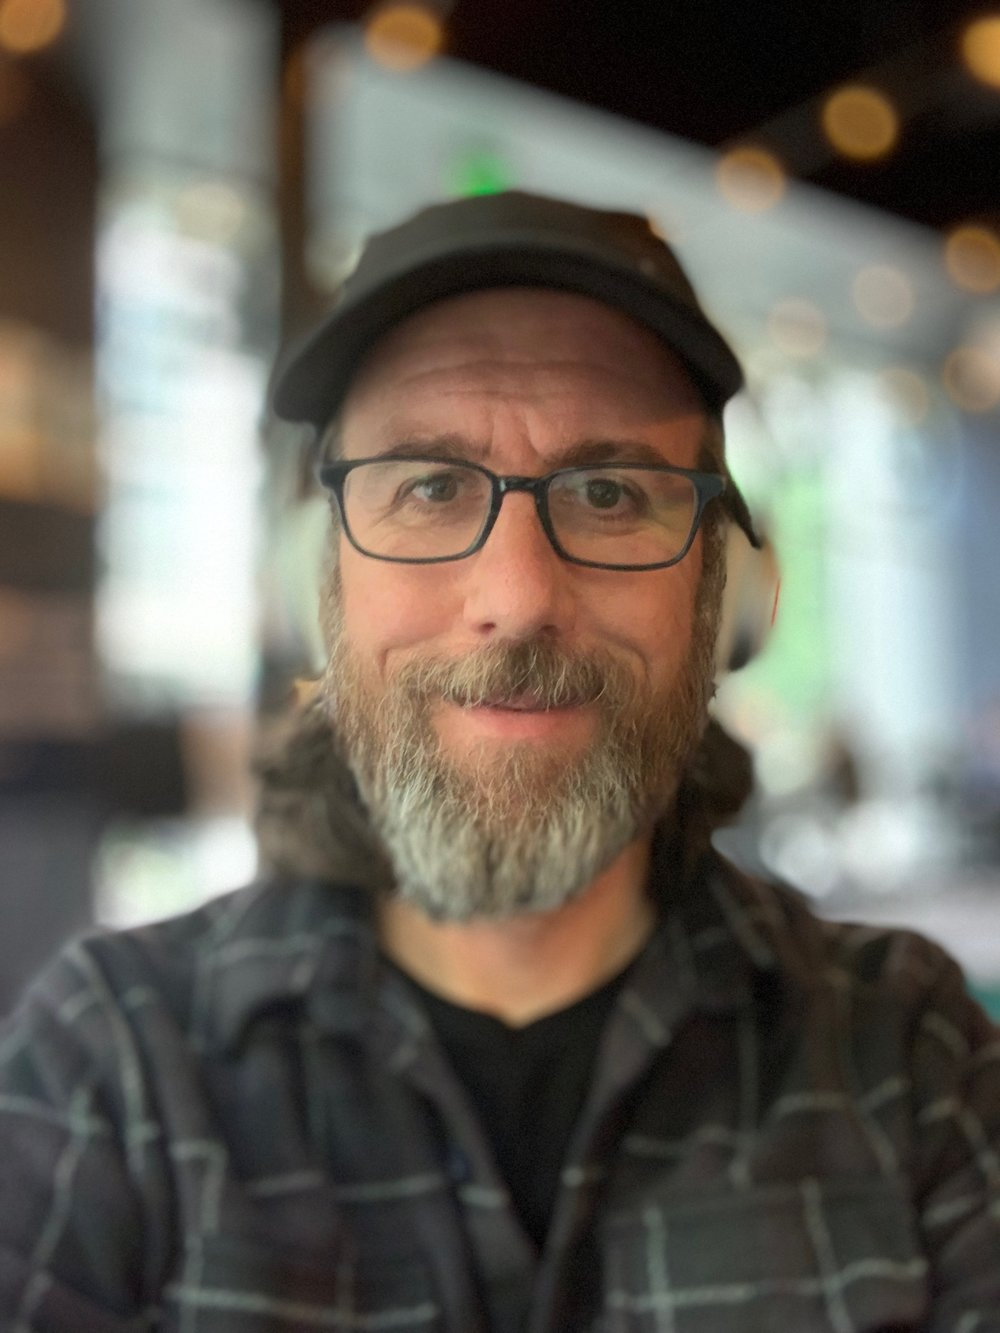 Portrait mode on the iPhone XS at f/1.4. Like a bad hallucination.